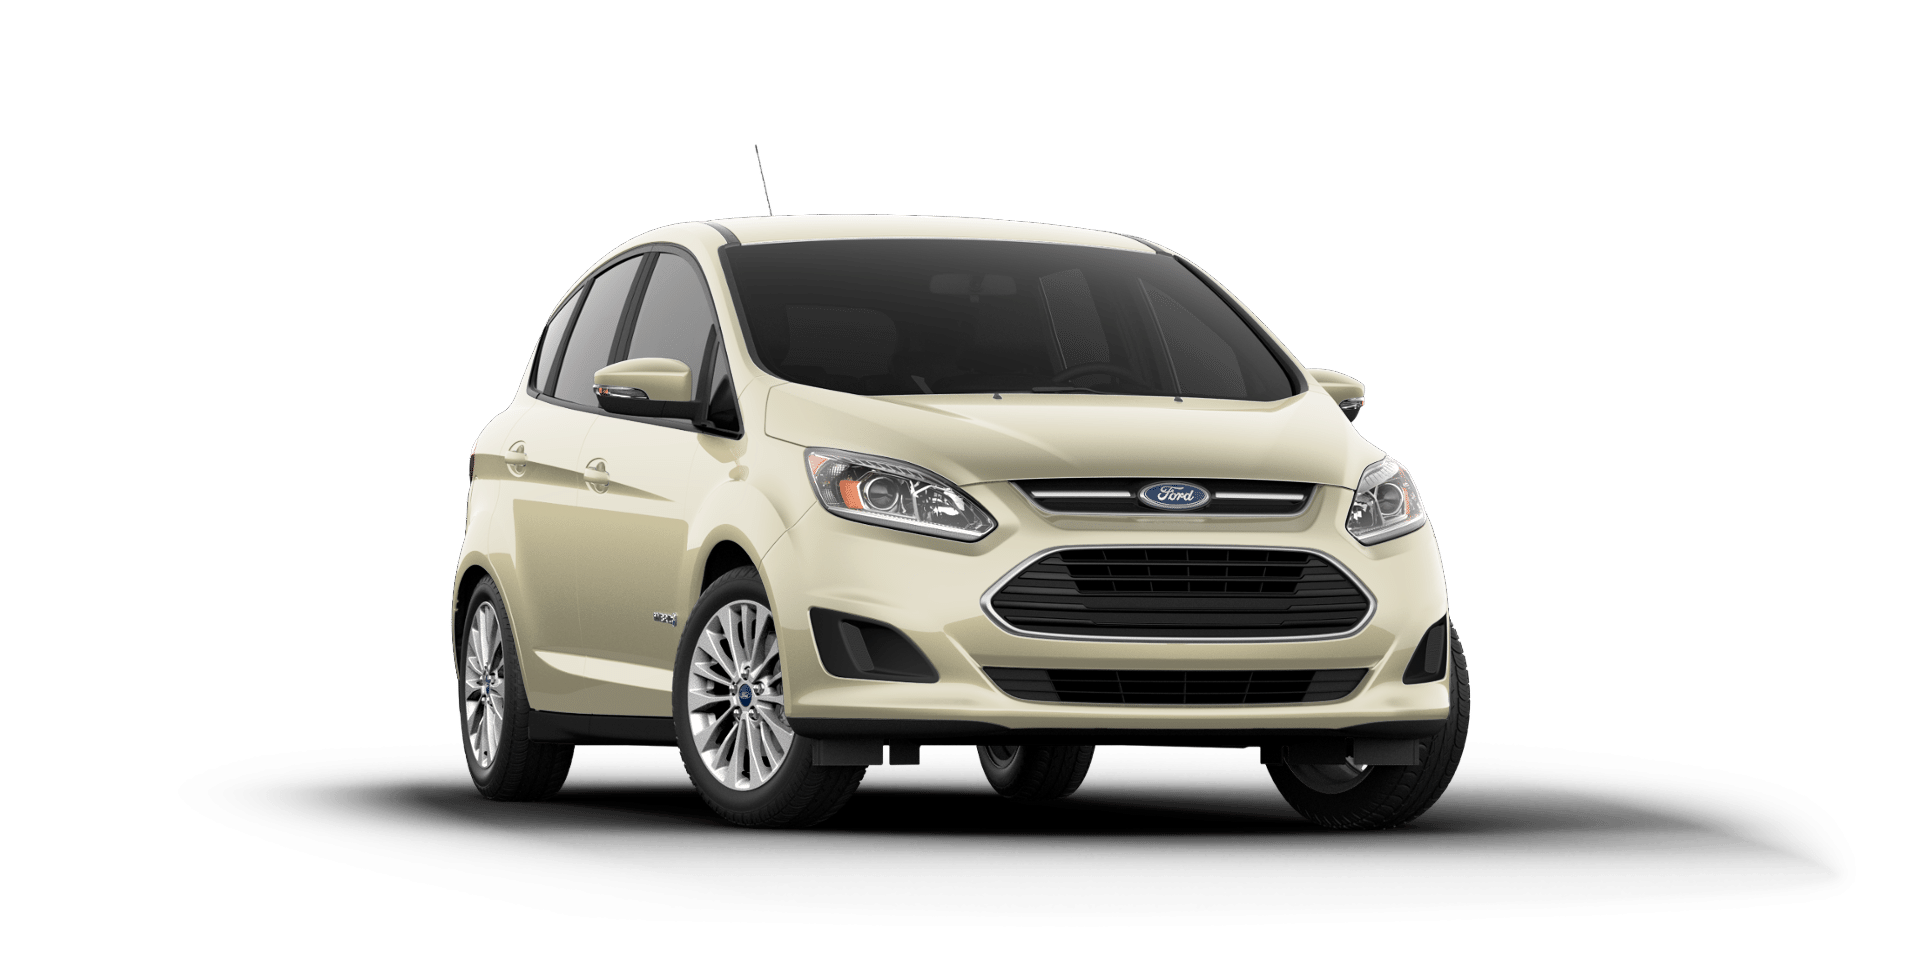 ford c max energi se 2017 exterior image gallery pictures photos. Black Bedroom Furniture Sets. Home Design Ideas